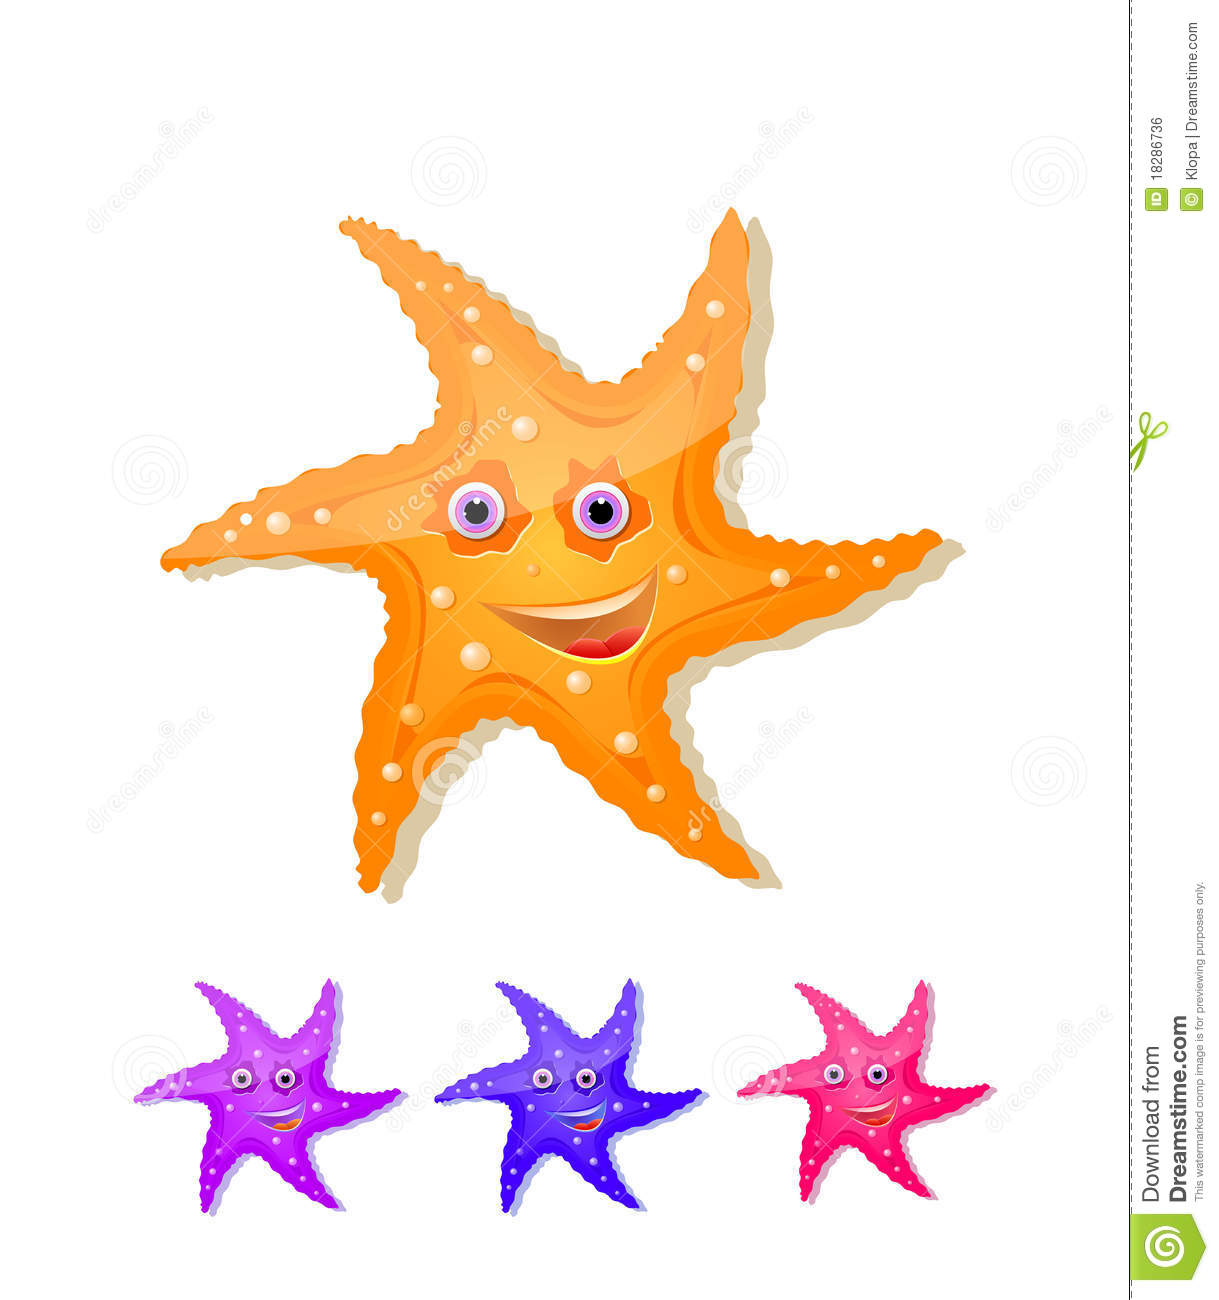 Starfish With Eyes And Smile Icon Set Royalty Free Stock Image.